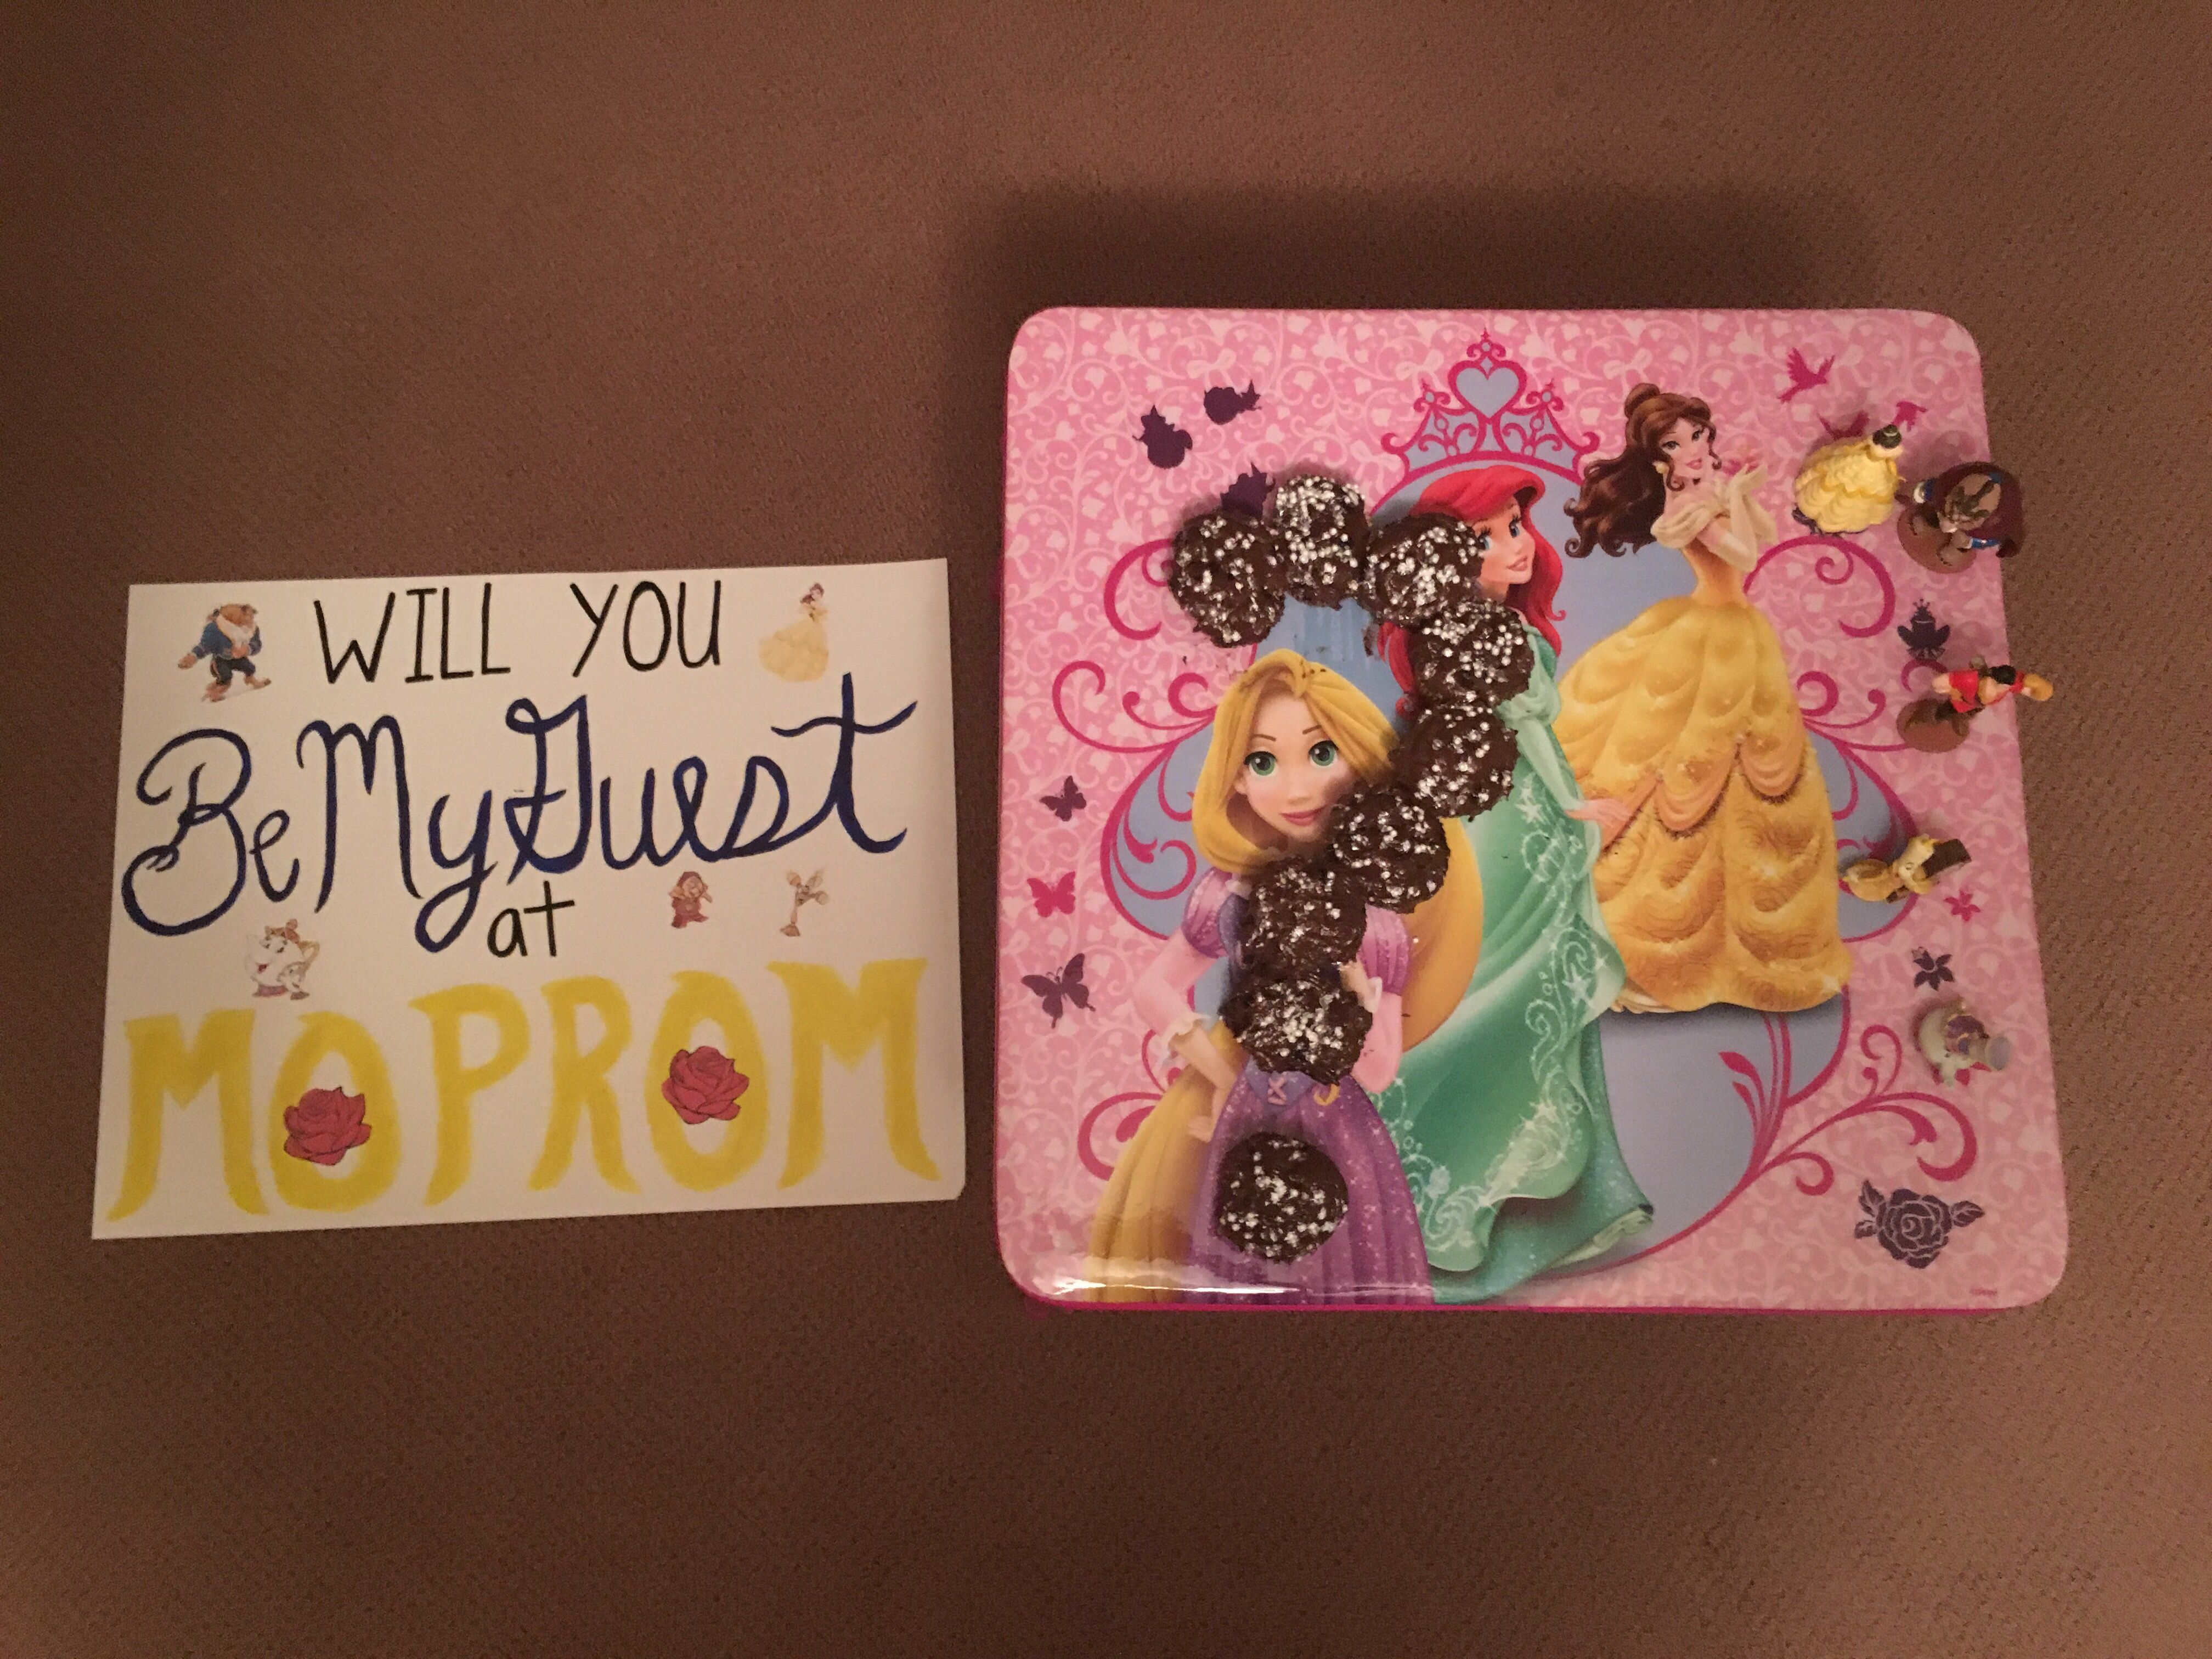 Beauty And The Beast Mormon Prom Promposal By @qtjen3